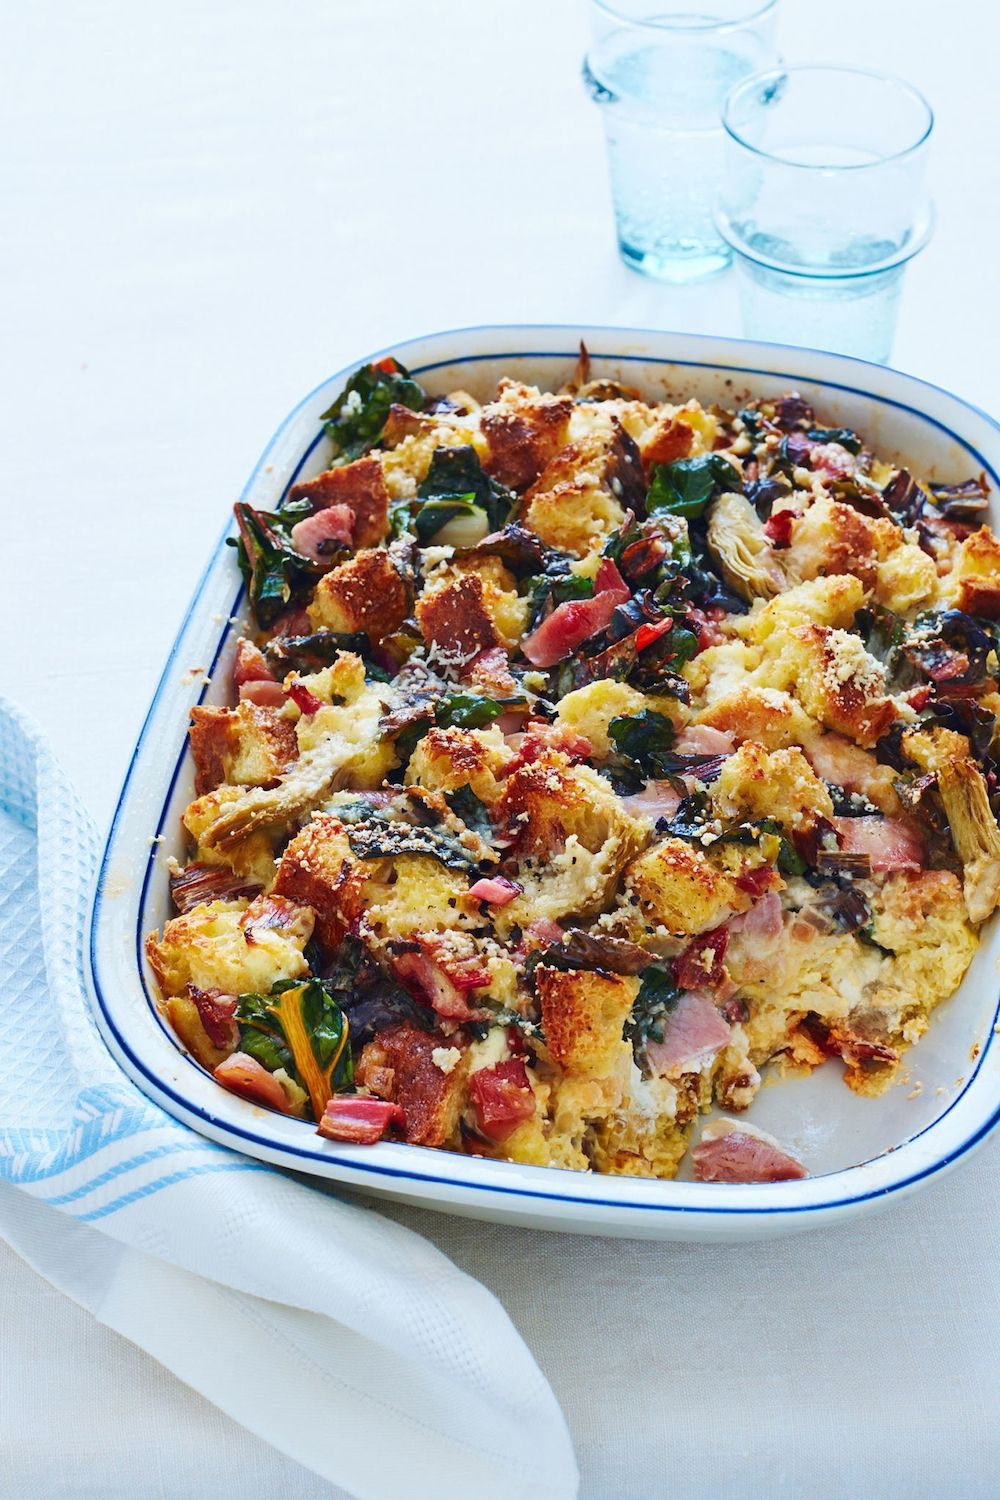 """<p>Hearty and impressive, this savory egg-based casserole is the perfect addition to your buffet table. (Bonus: You can do most of the prep the night before!)</p><p><strong>Recipe</strong>: <a href=""""http://www.countryliving.com/food-drinks/recipes/a34293/breakfast-bread-pudding-recipe-wdy0414/ """" target=""""_blank"""">Breakfast Bread Pudding</a><br></p>"""